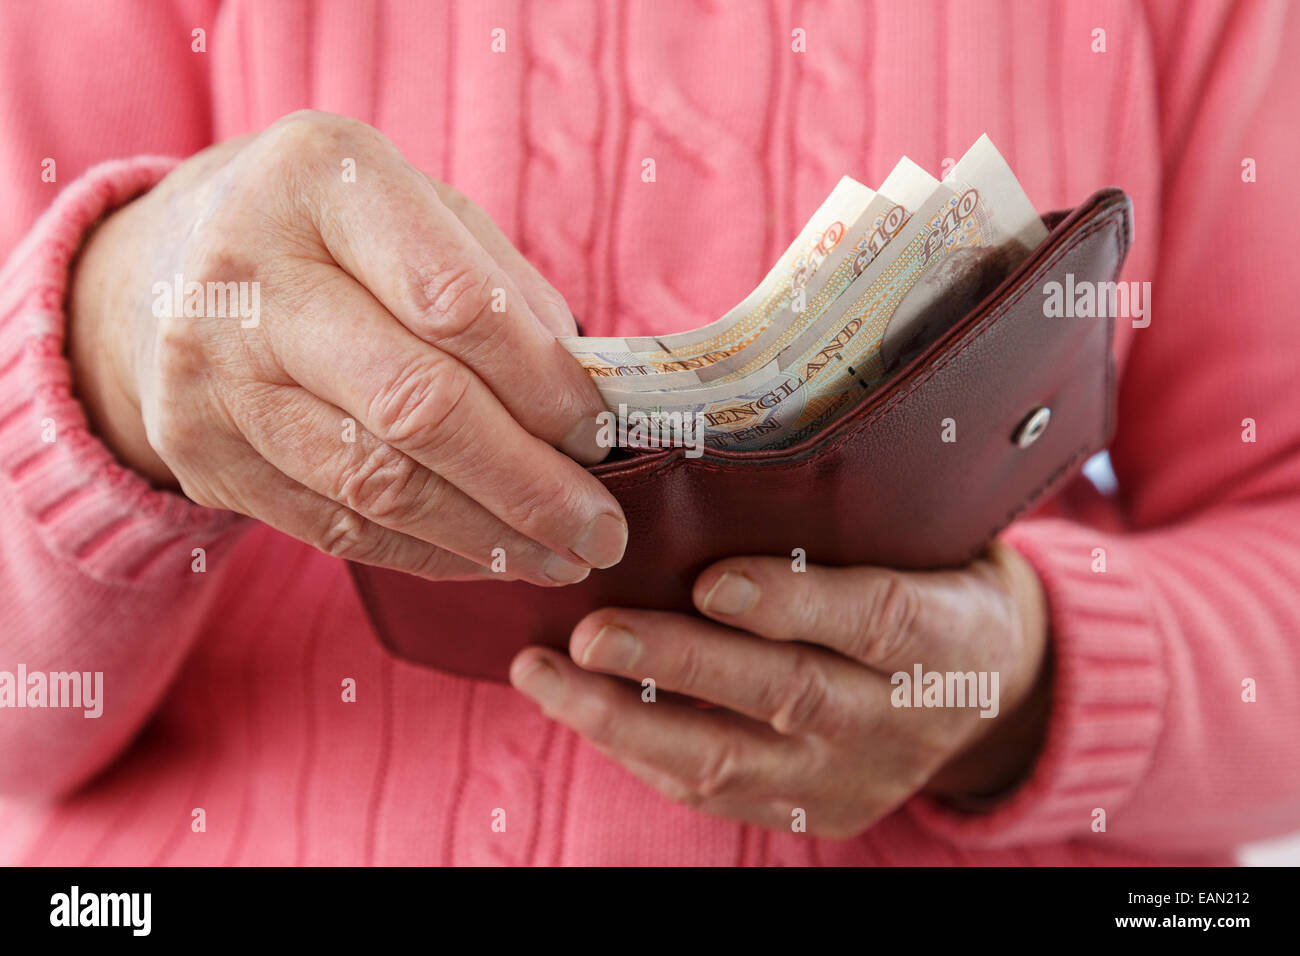 Elderly senior woman old age pensioner taking ten pound notes GBP out of a money wallet to buy and pay for something - Stock Image